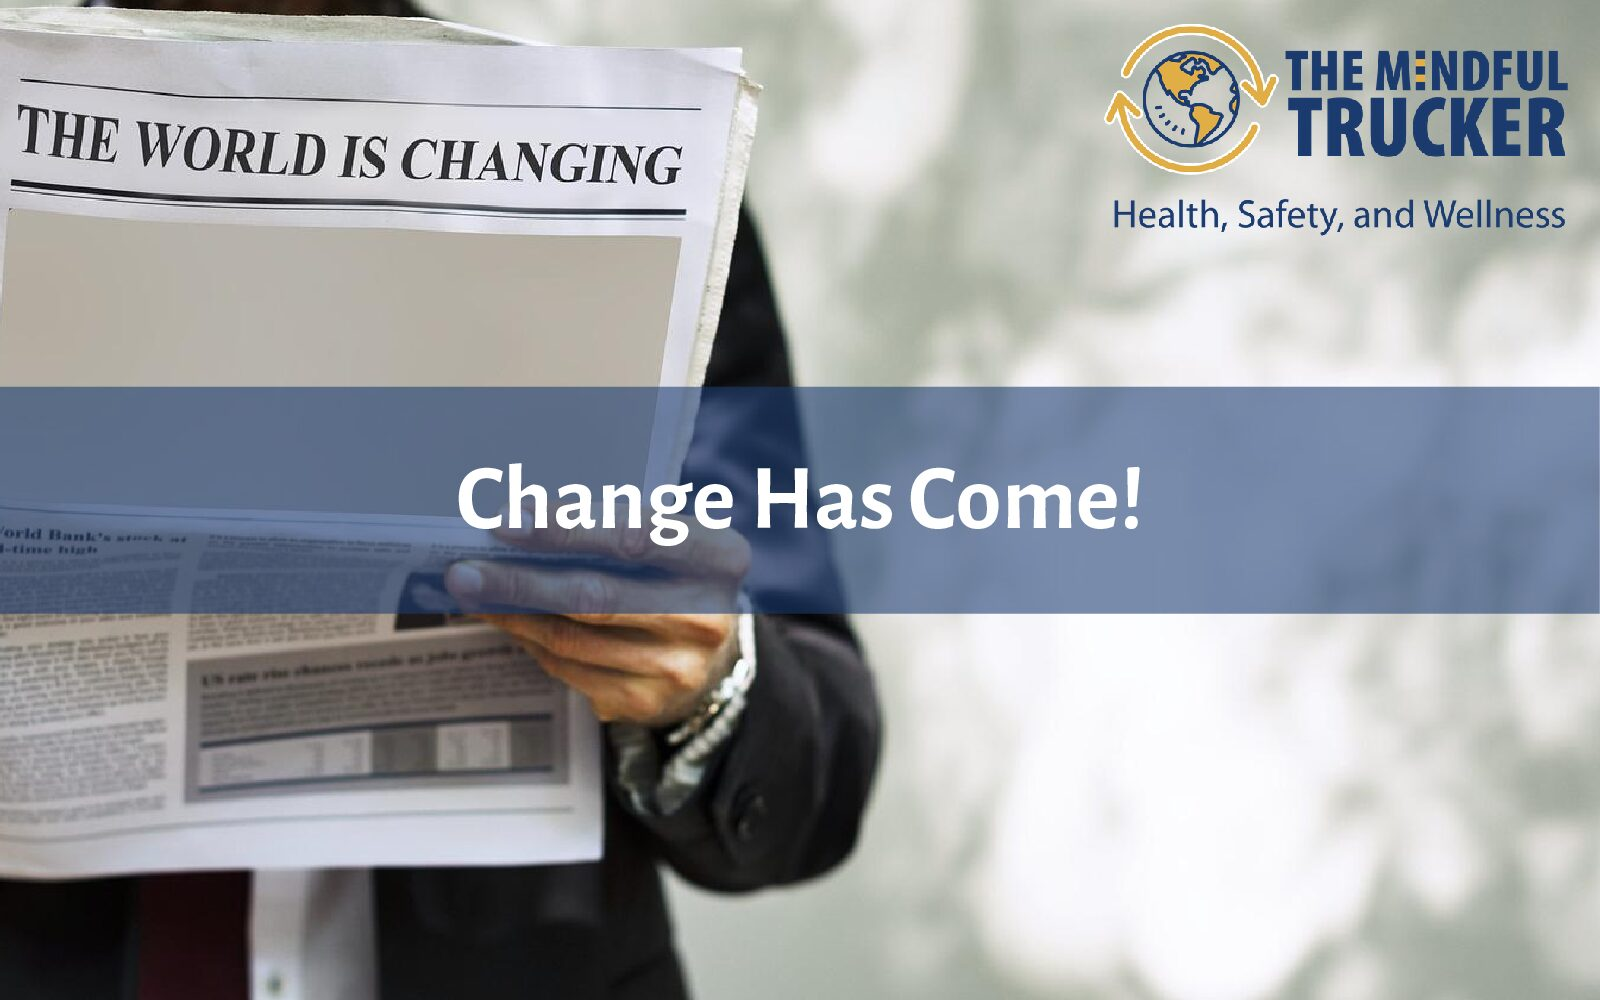 Change Has Come!